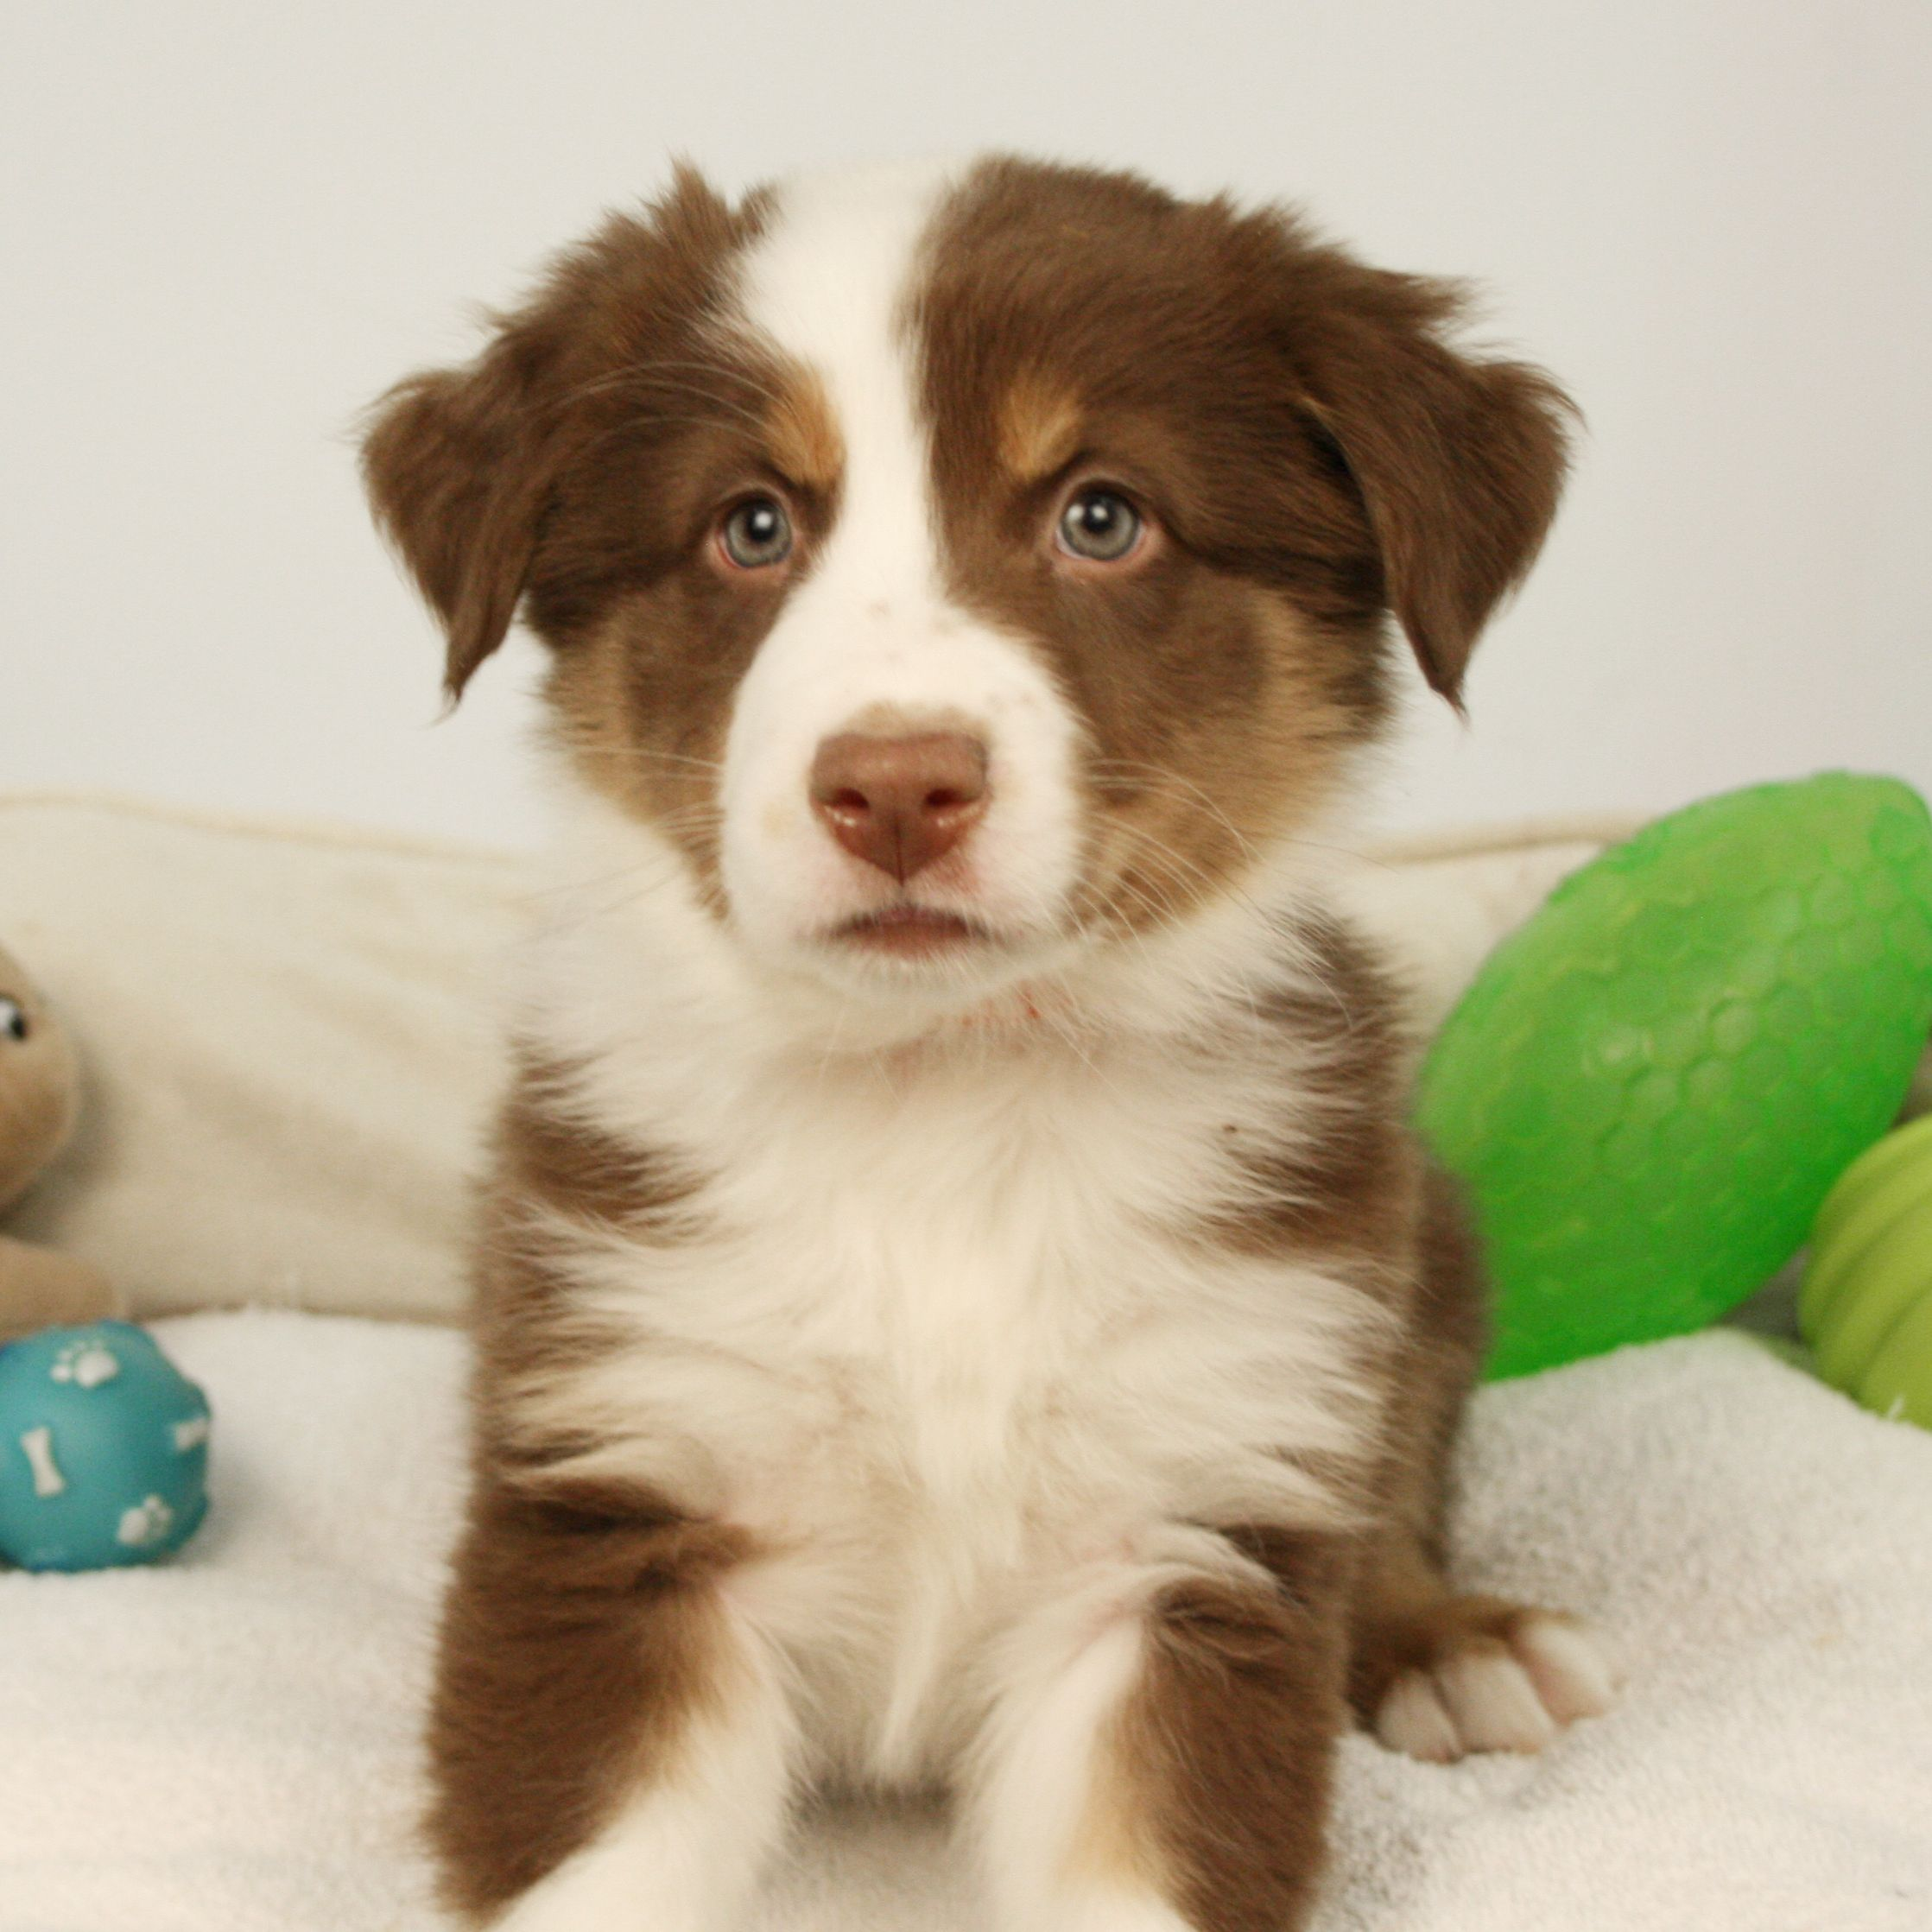 Aussie Puppies Are Both Adorable And Very Smart Aussie Puppies